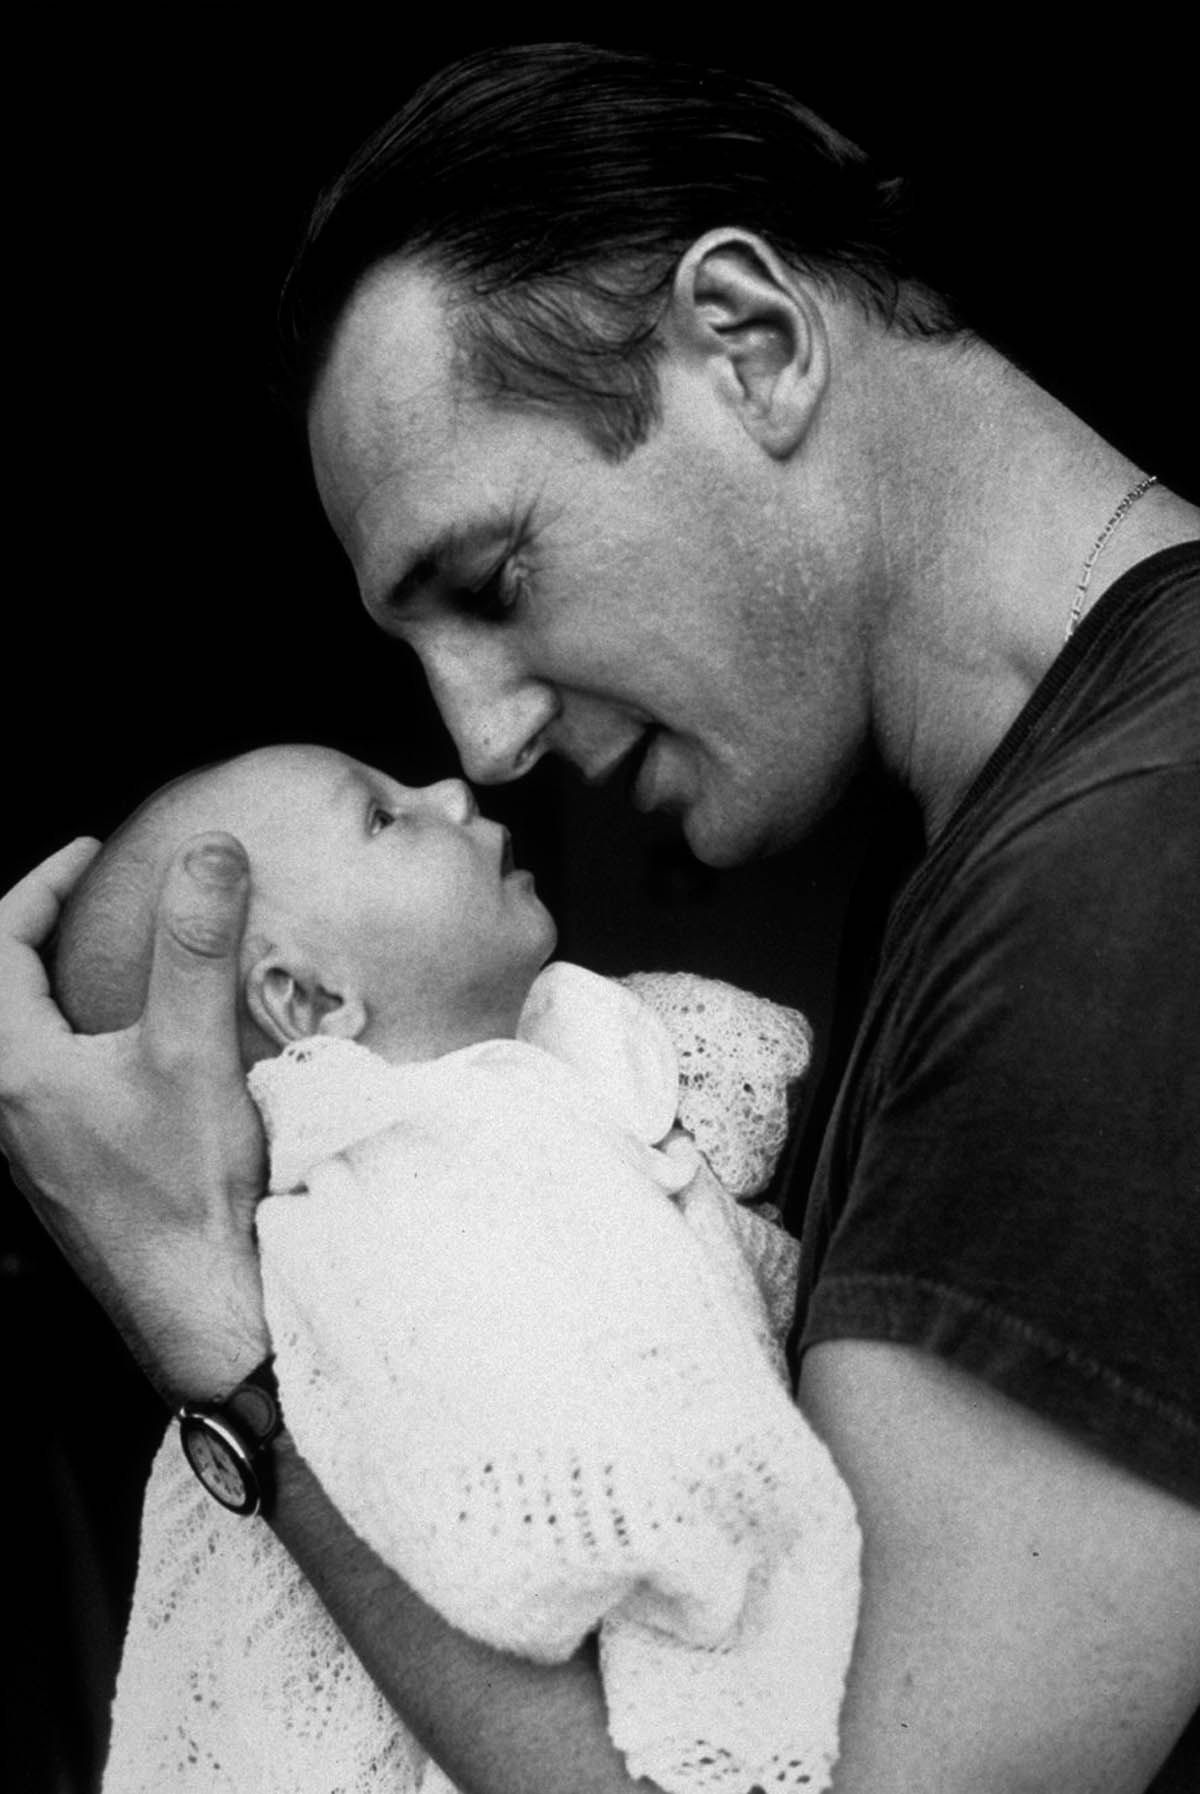 liam neeson  - I must say there is nothing sexier than a man connecting with a baby. I don't why, but it just is.